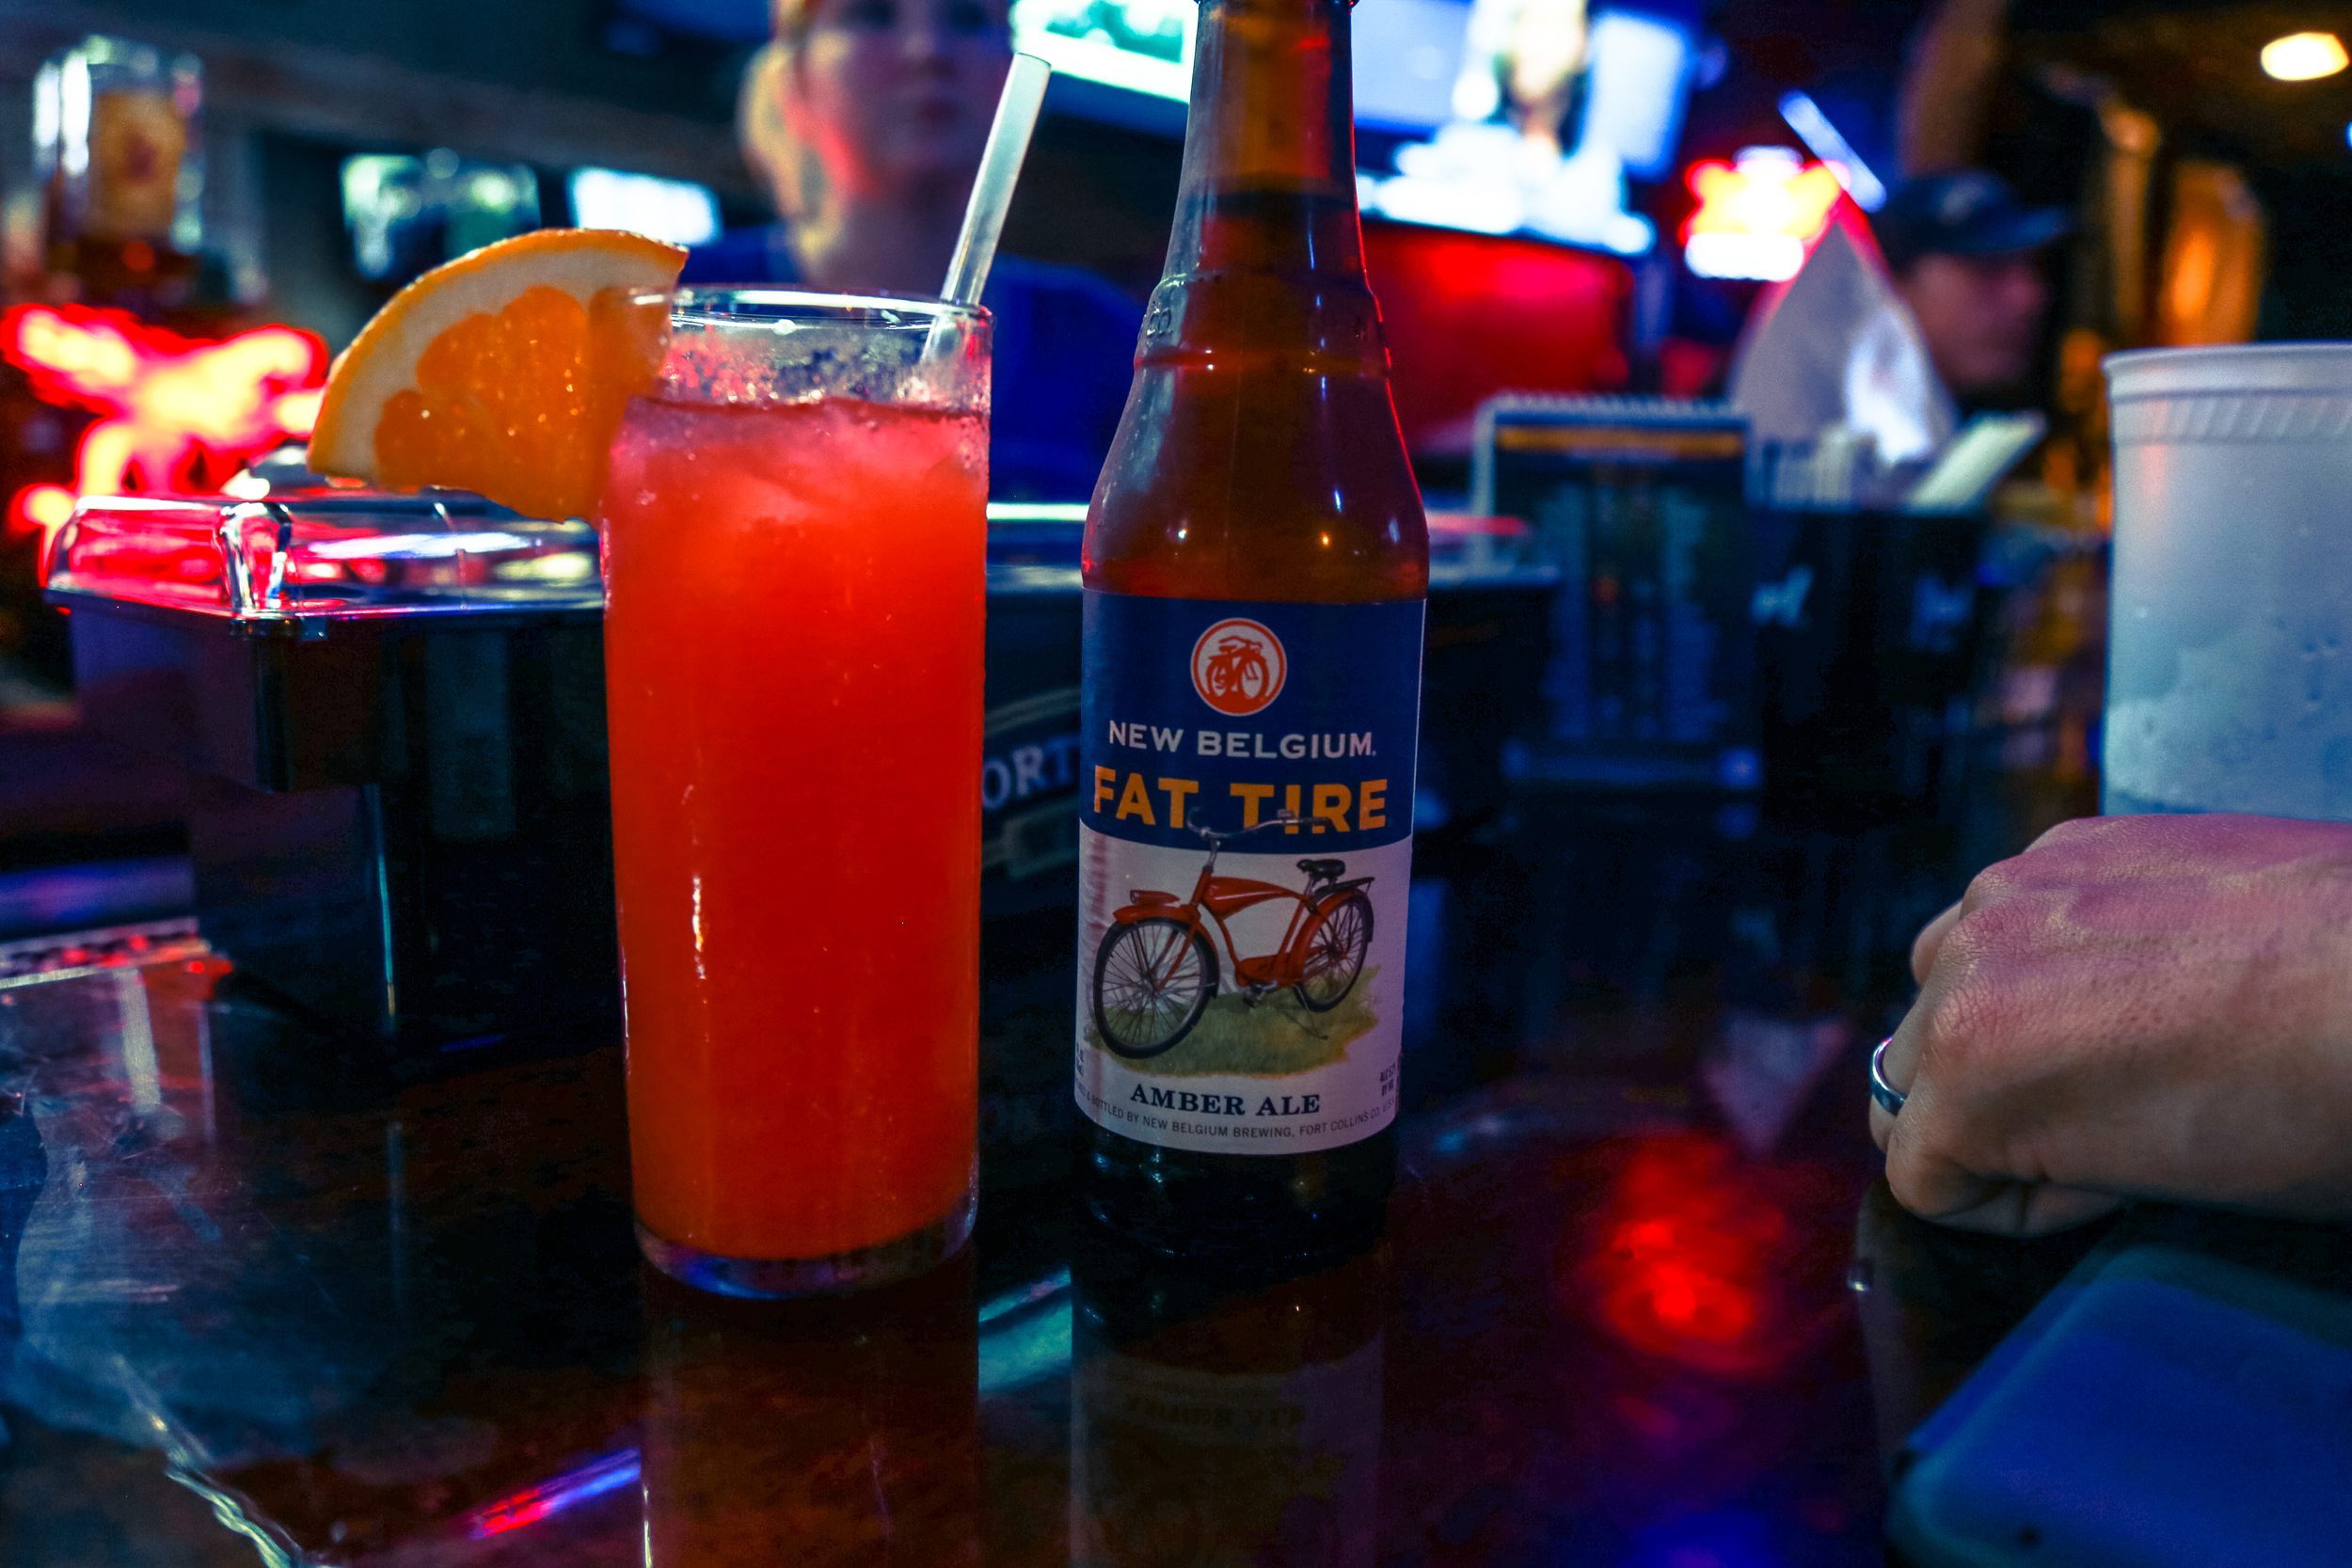 New Belgium Fat Tire Amber Ale sitting next to a mixed drink at sports bar American Sports Saloon in New Orleans, LA